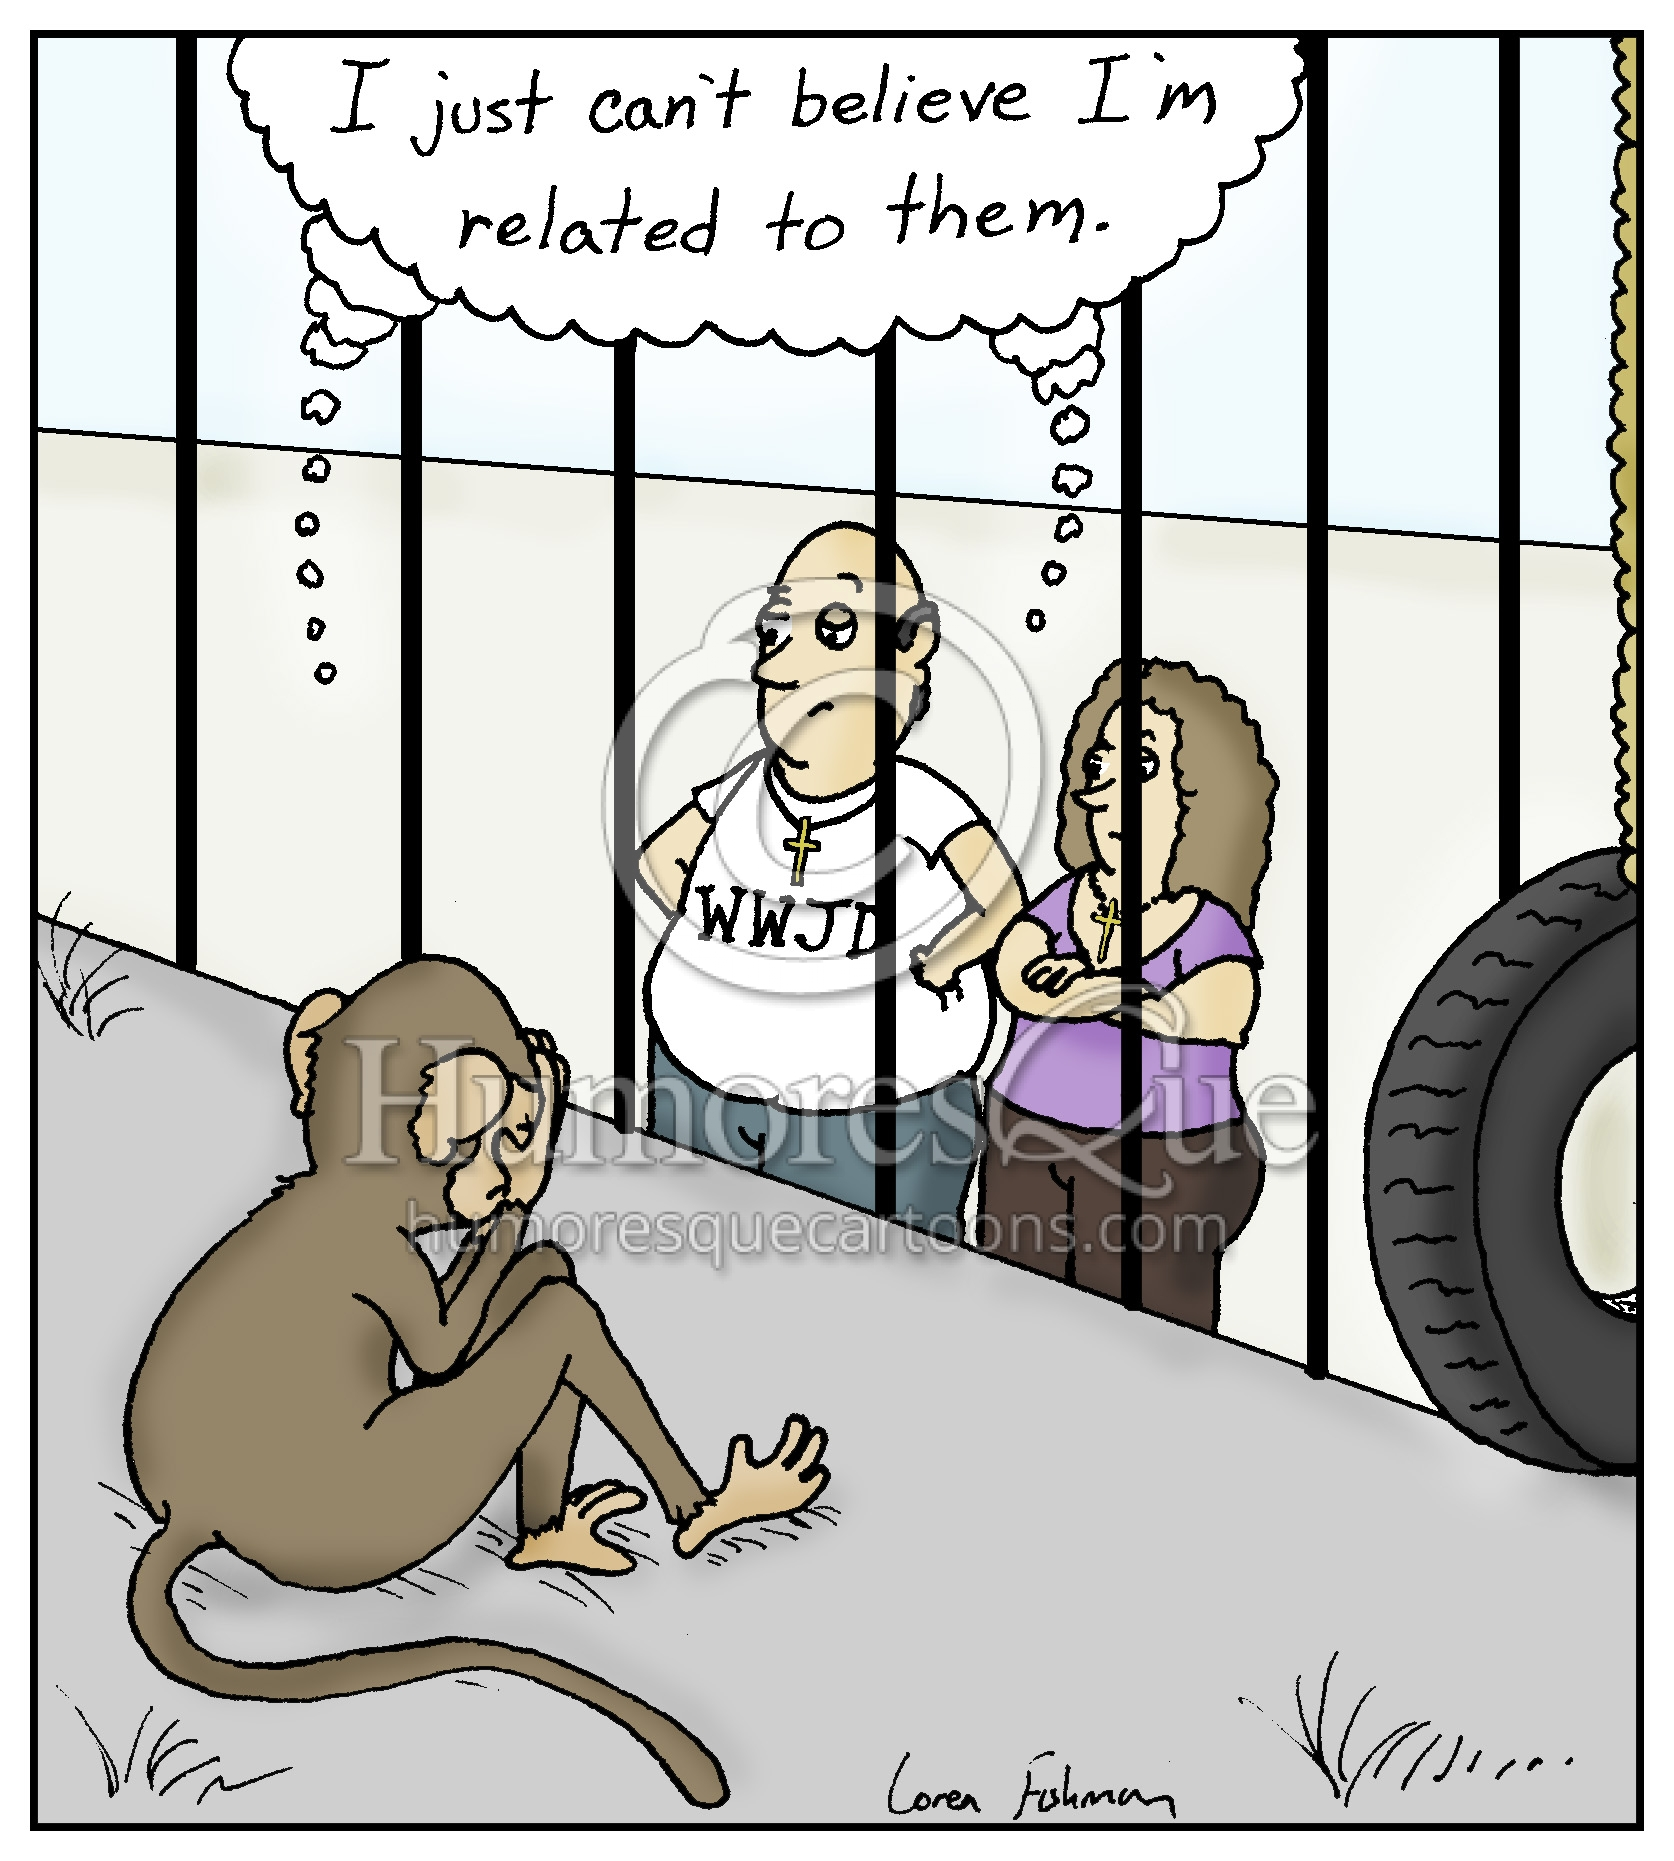 christians don't believe in evolution embarassed monkey cartoon